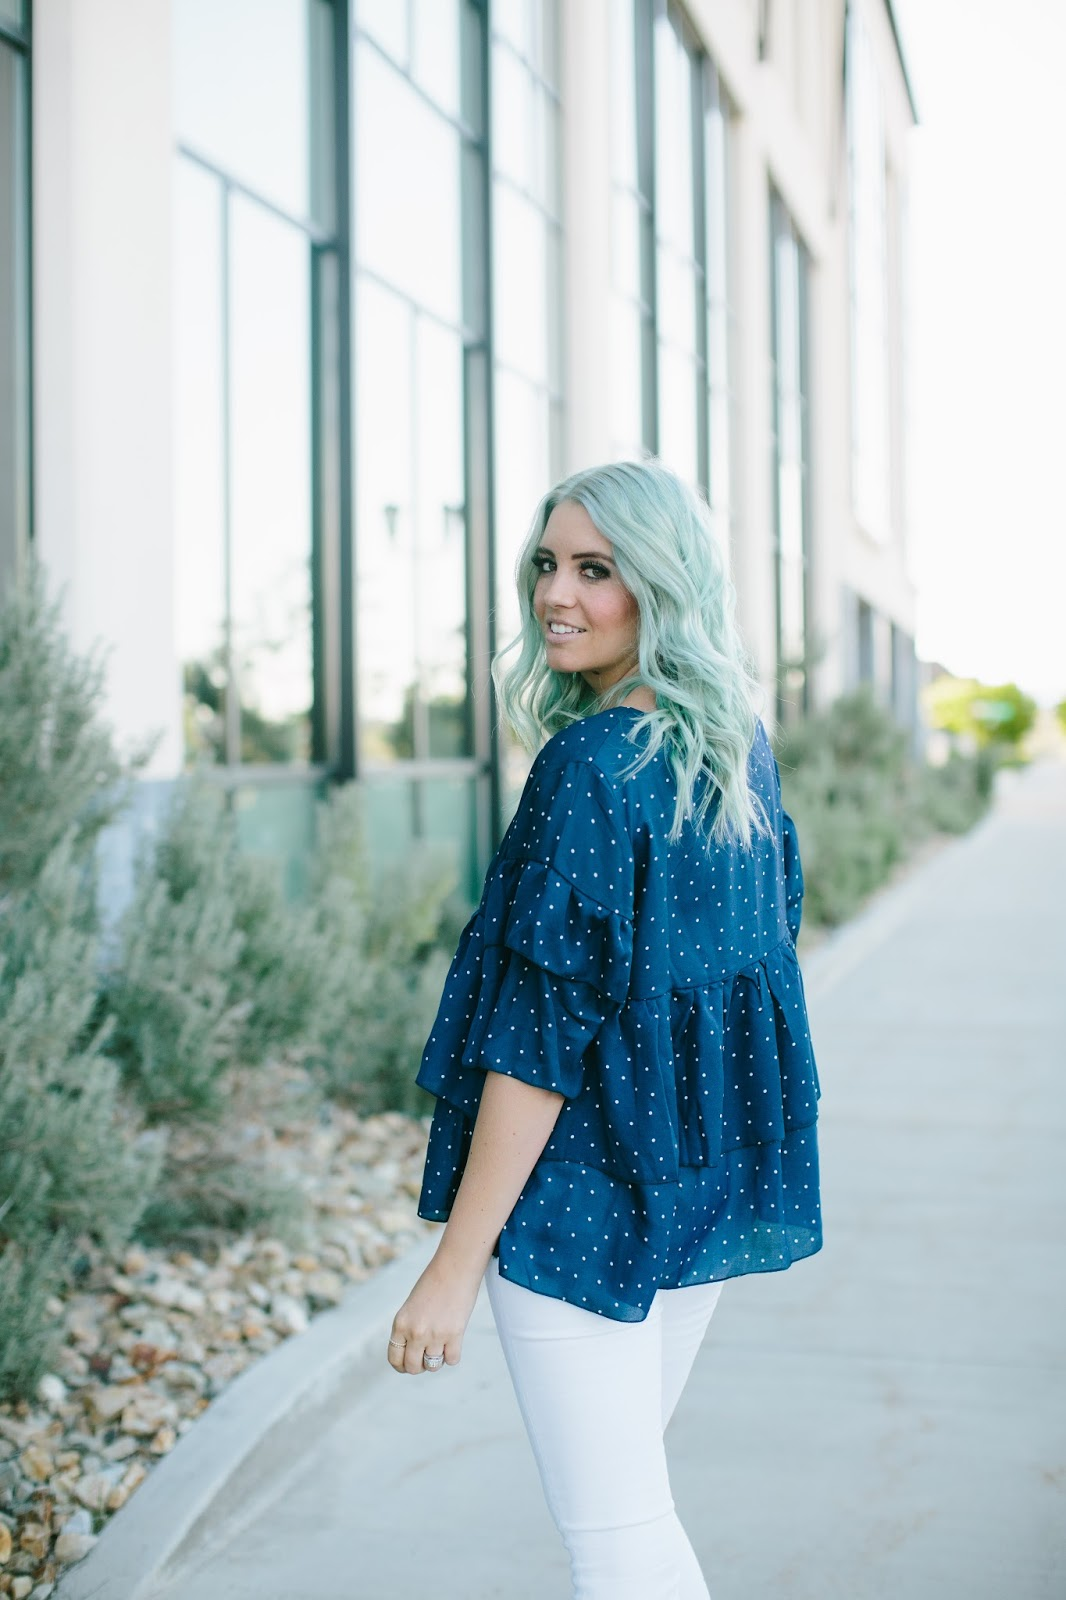 Ruffle Top, Modest Fashion Blogger, Mint Hair